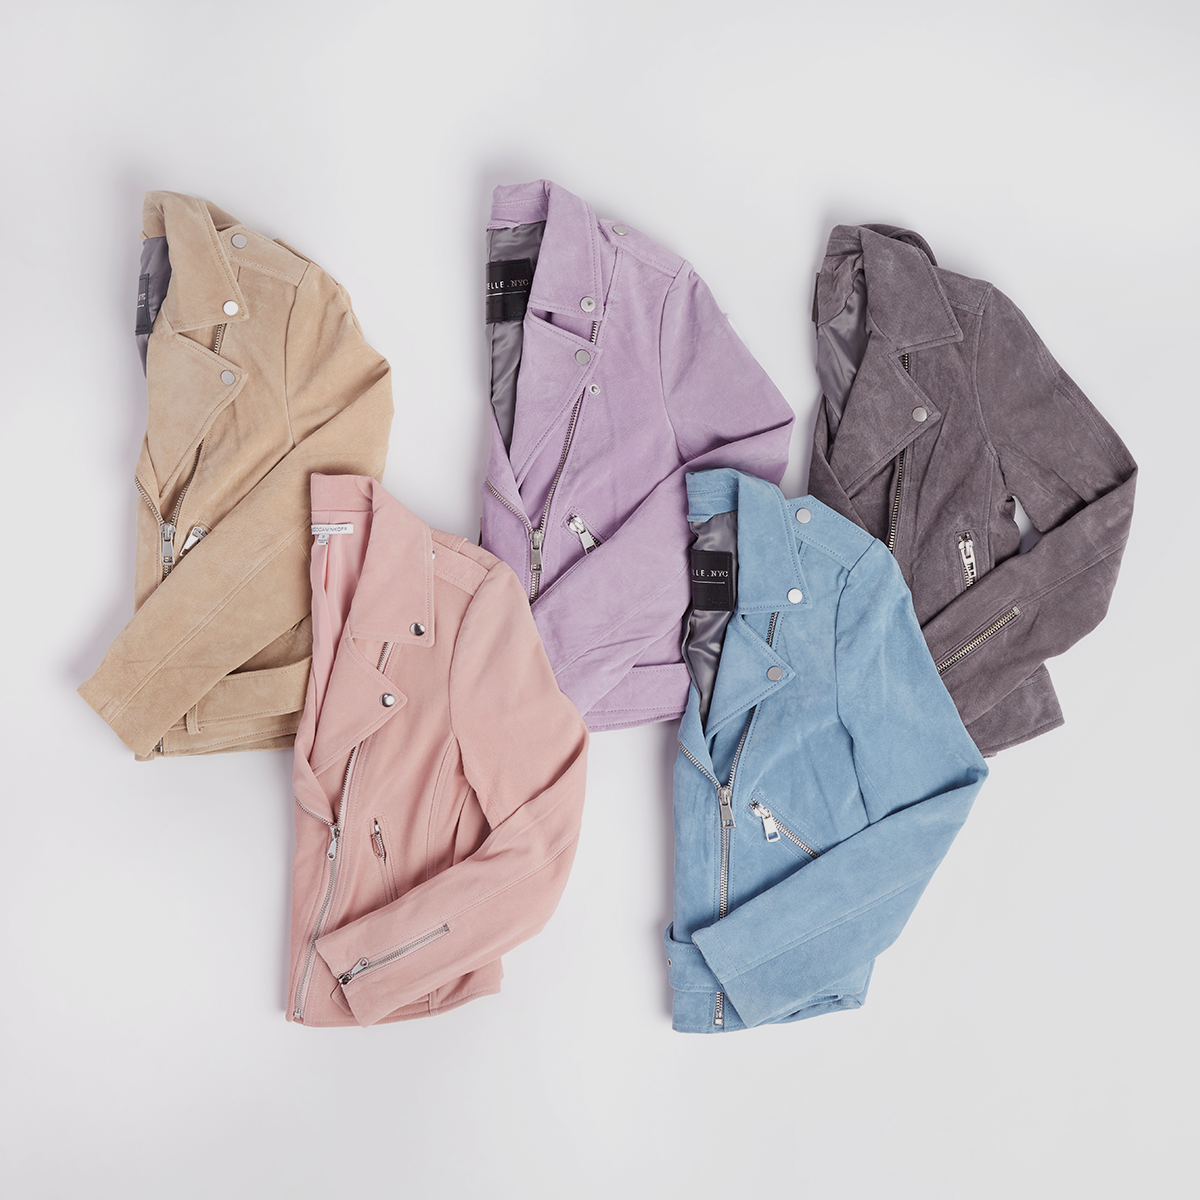 Five women's suede jackets in varying colors laid flat on a grey background.